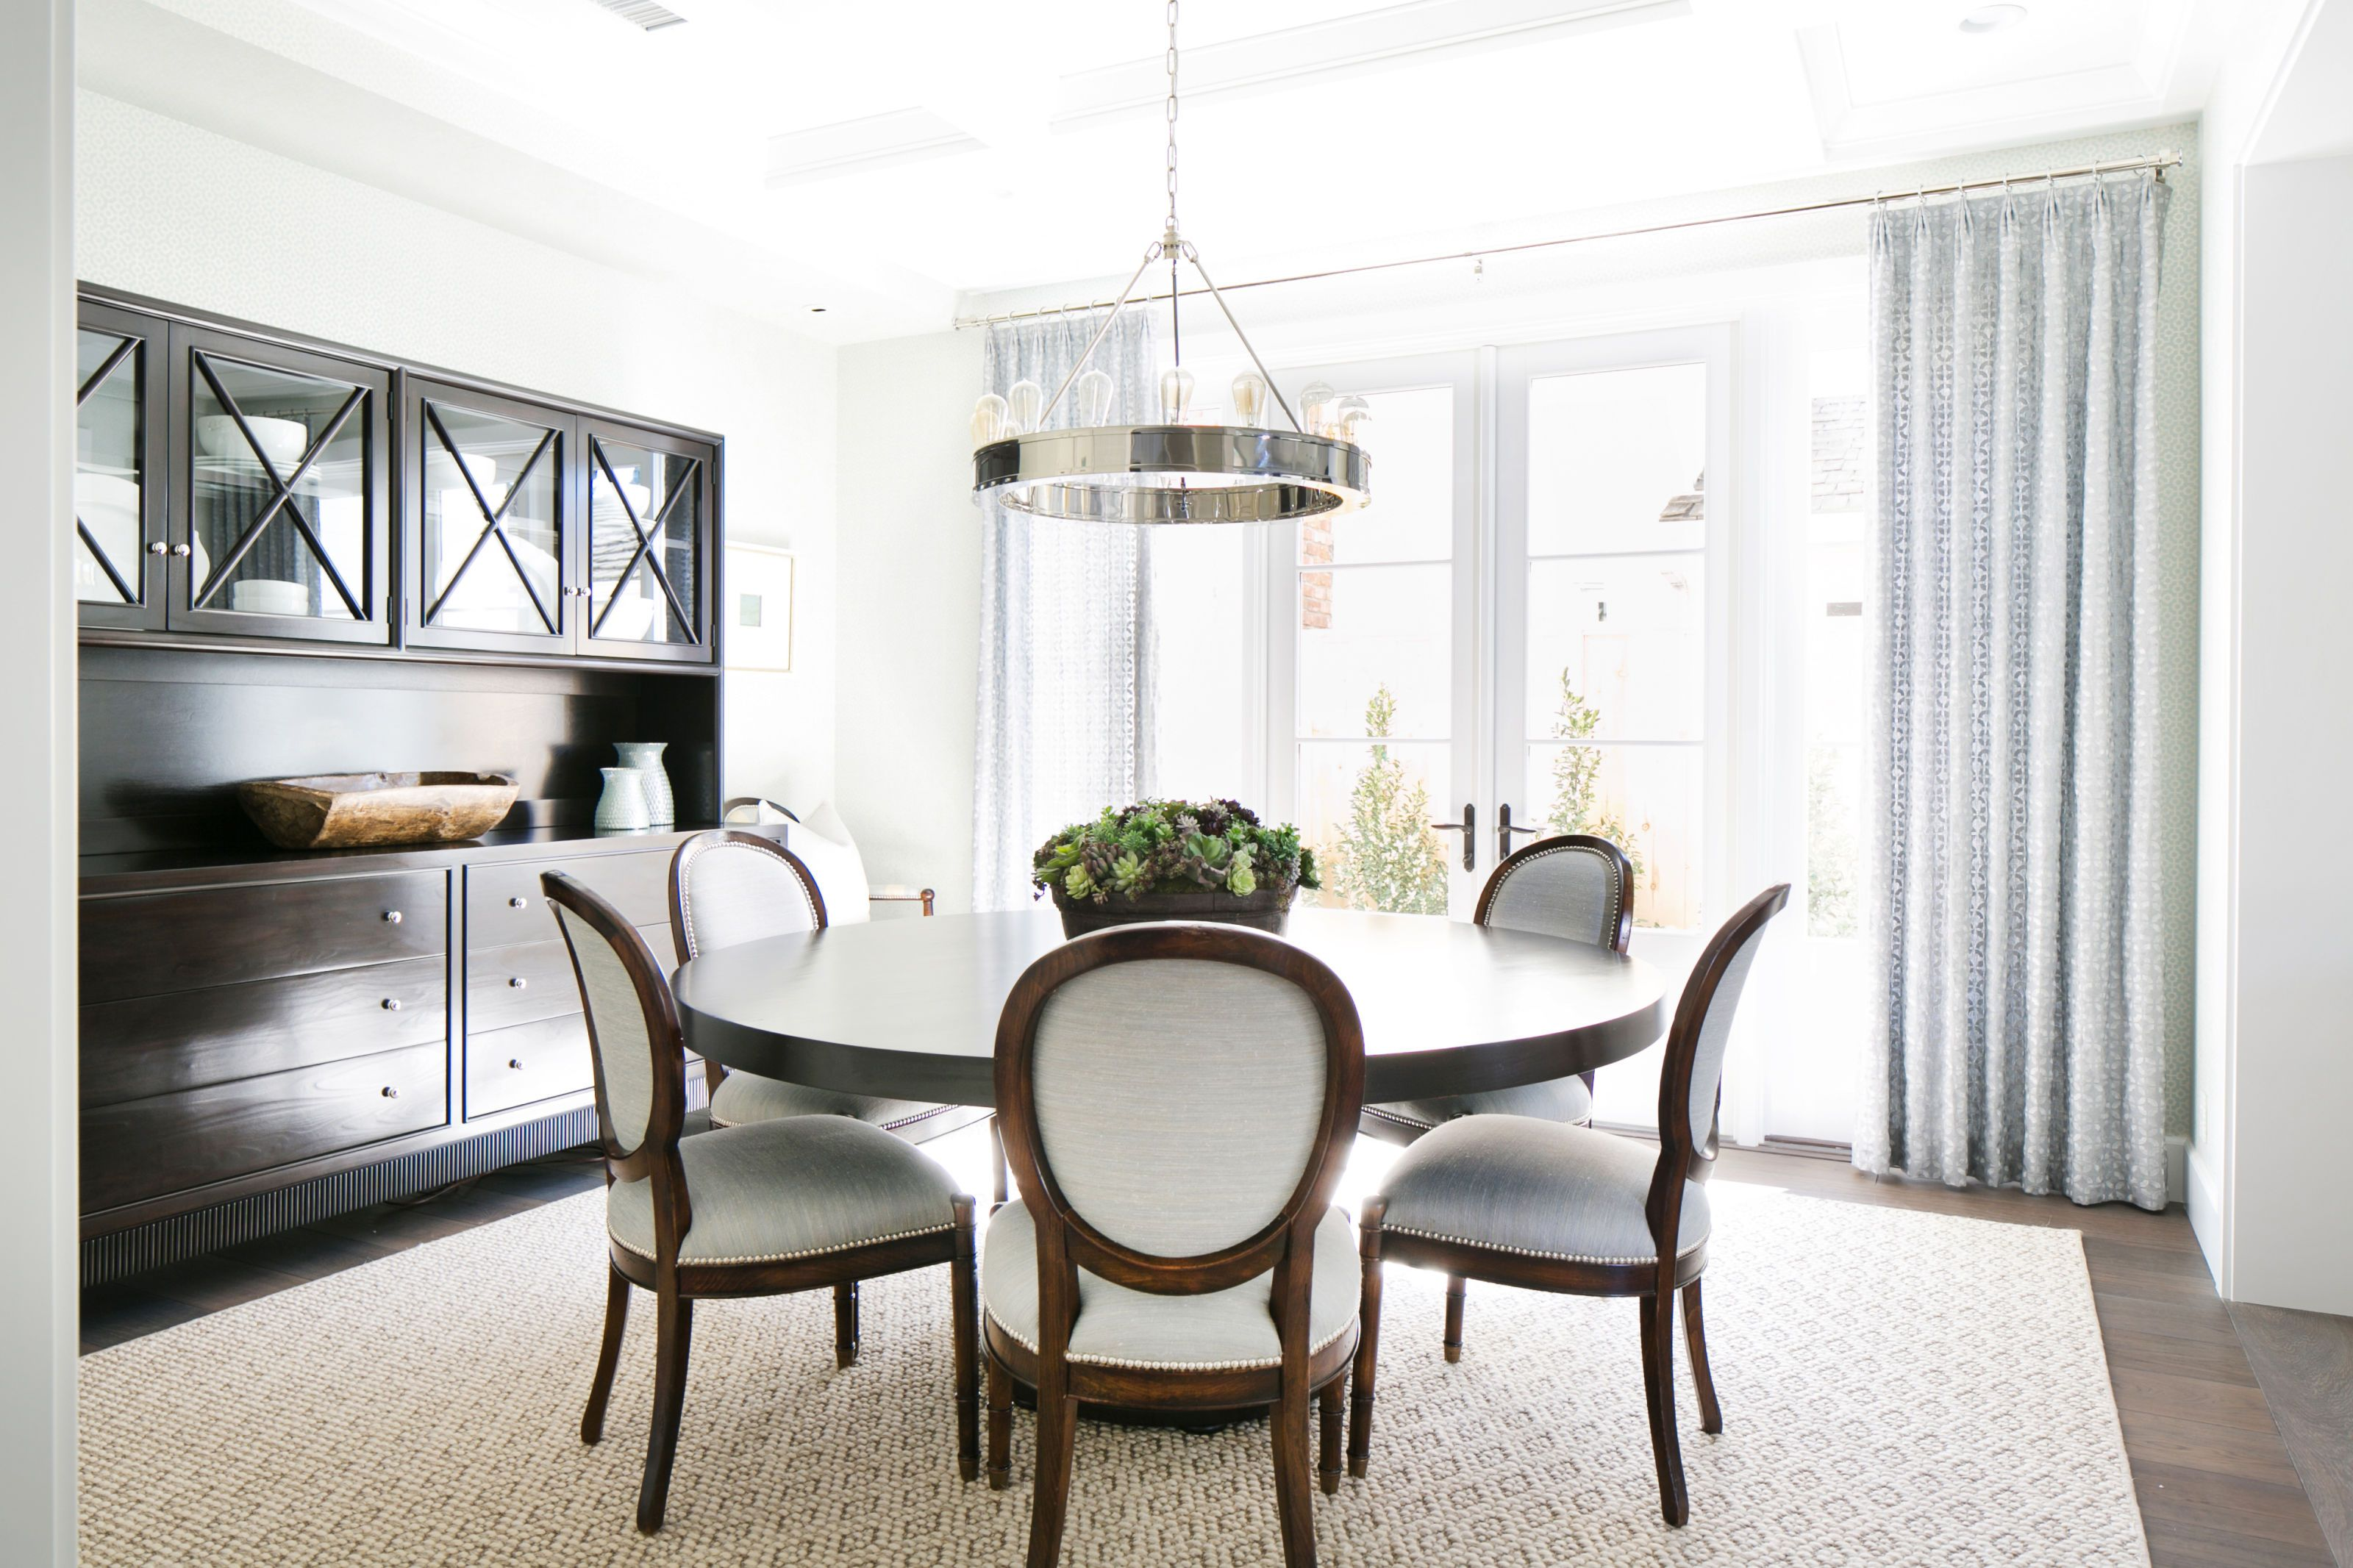 Round Dining Room Tables With Leaf Restaurant Interior Design - Black round dining room table with leaf